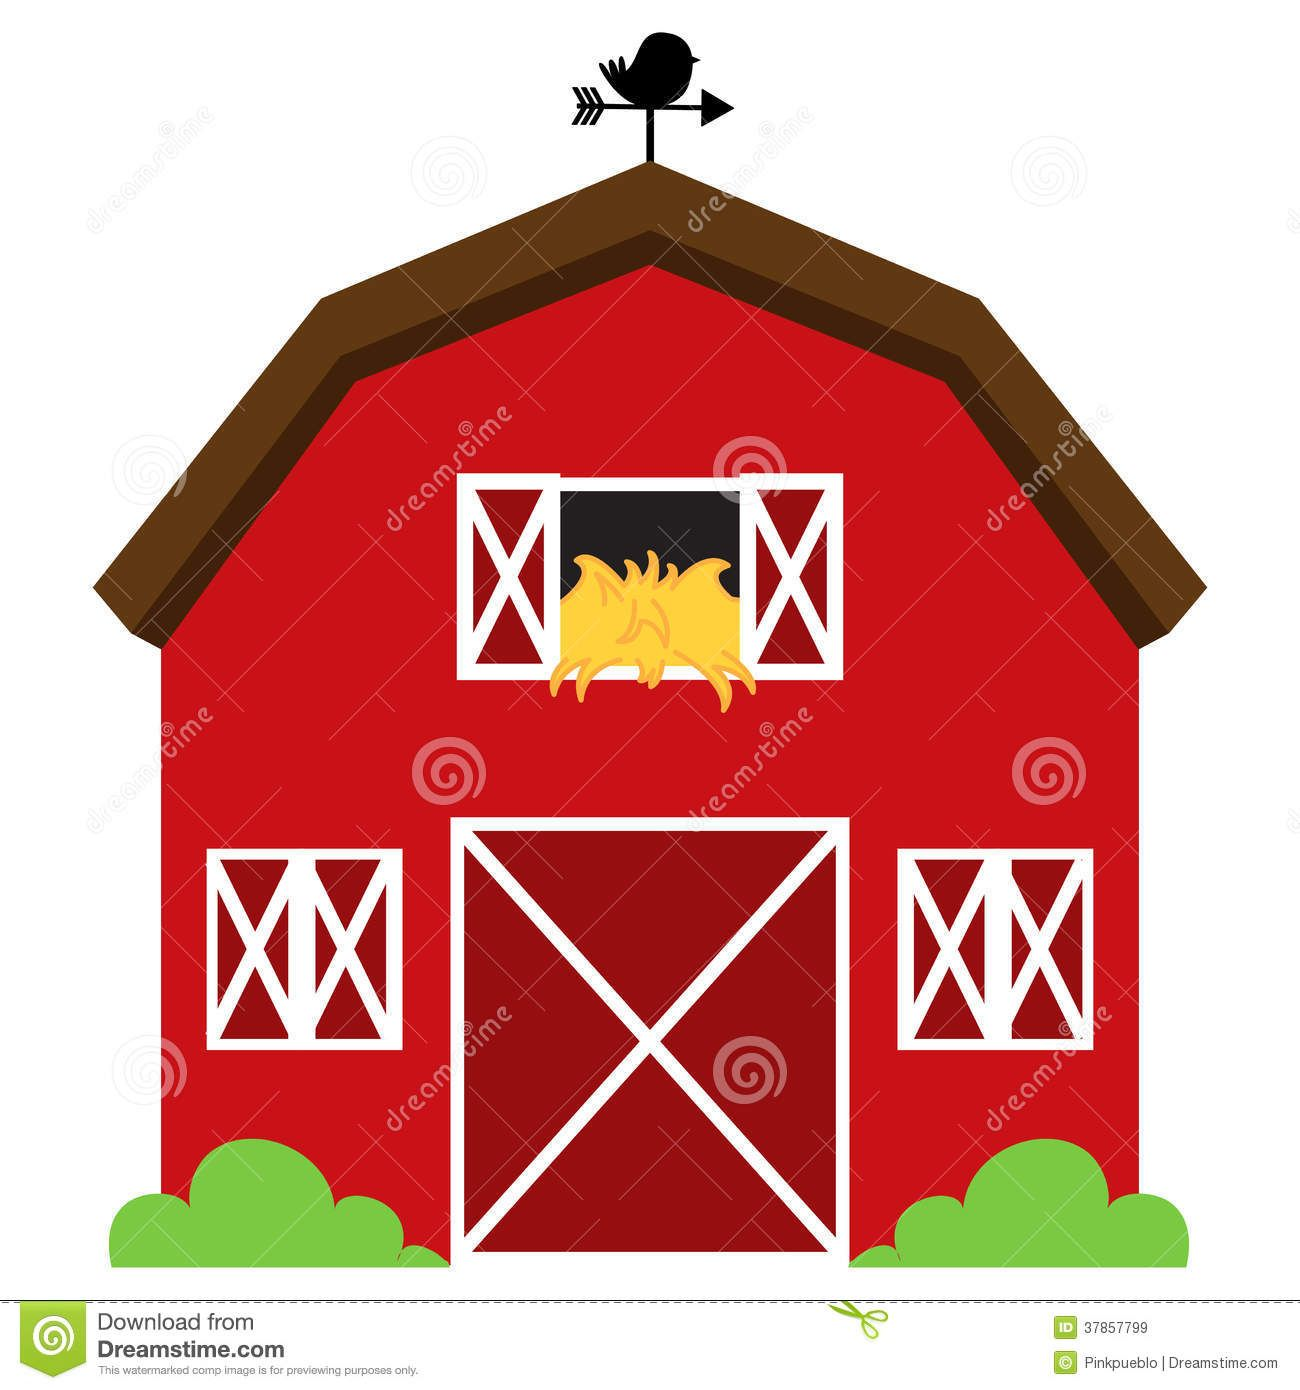 Barn clipart vector. Free clip art images